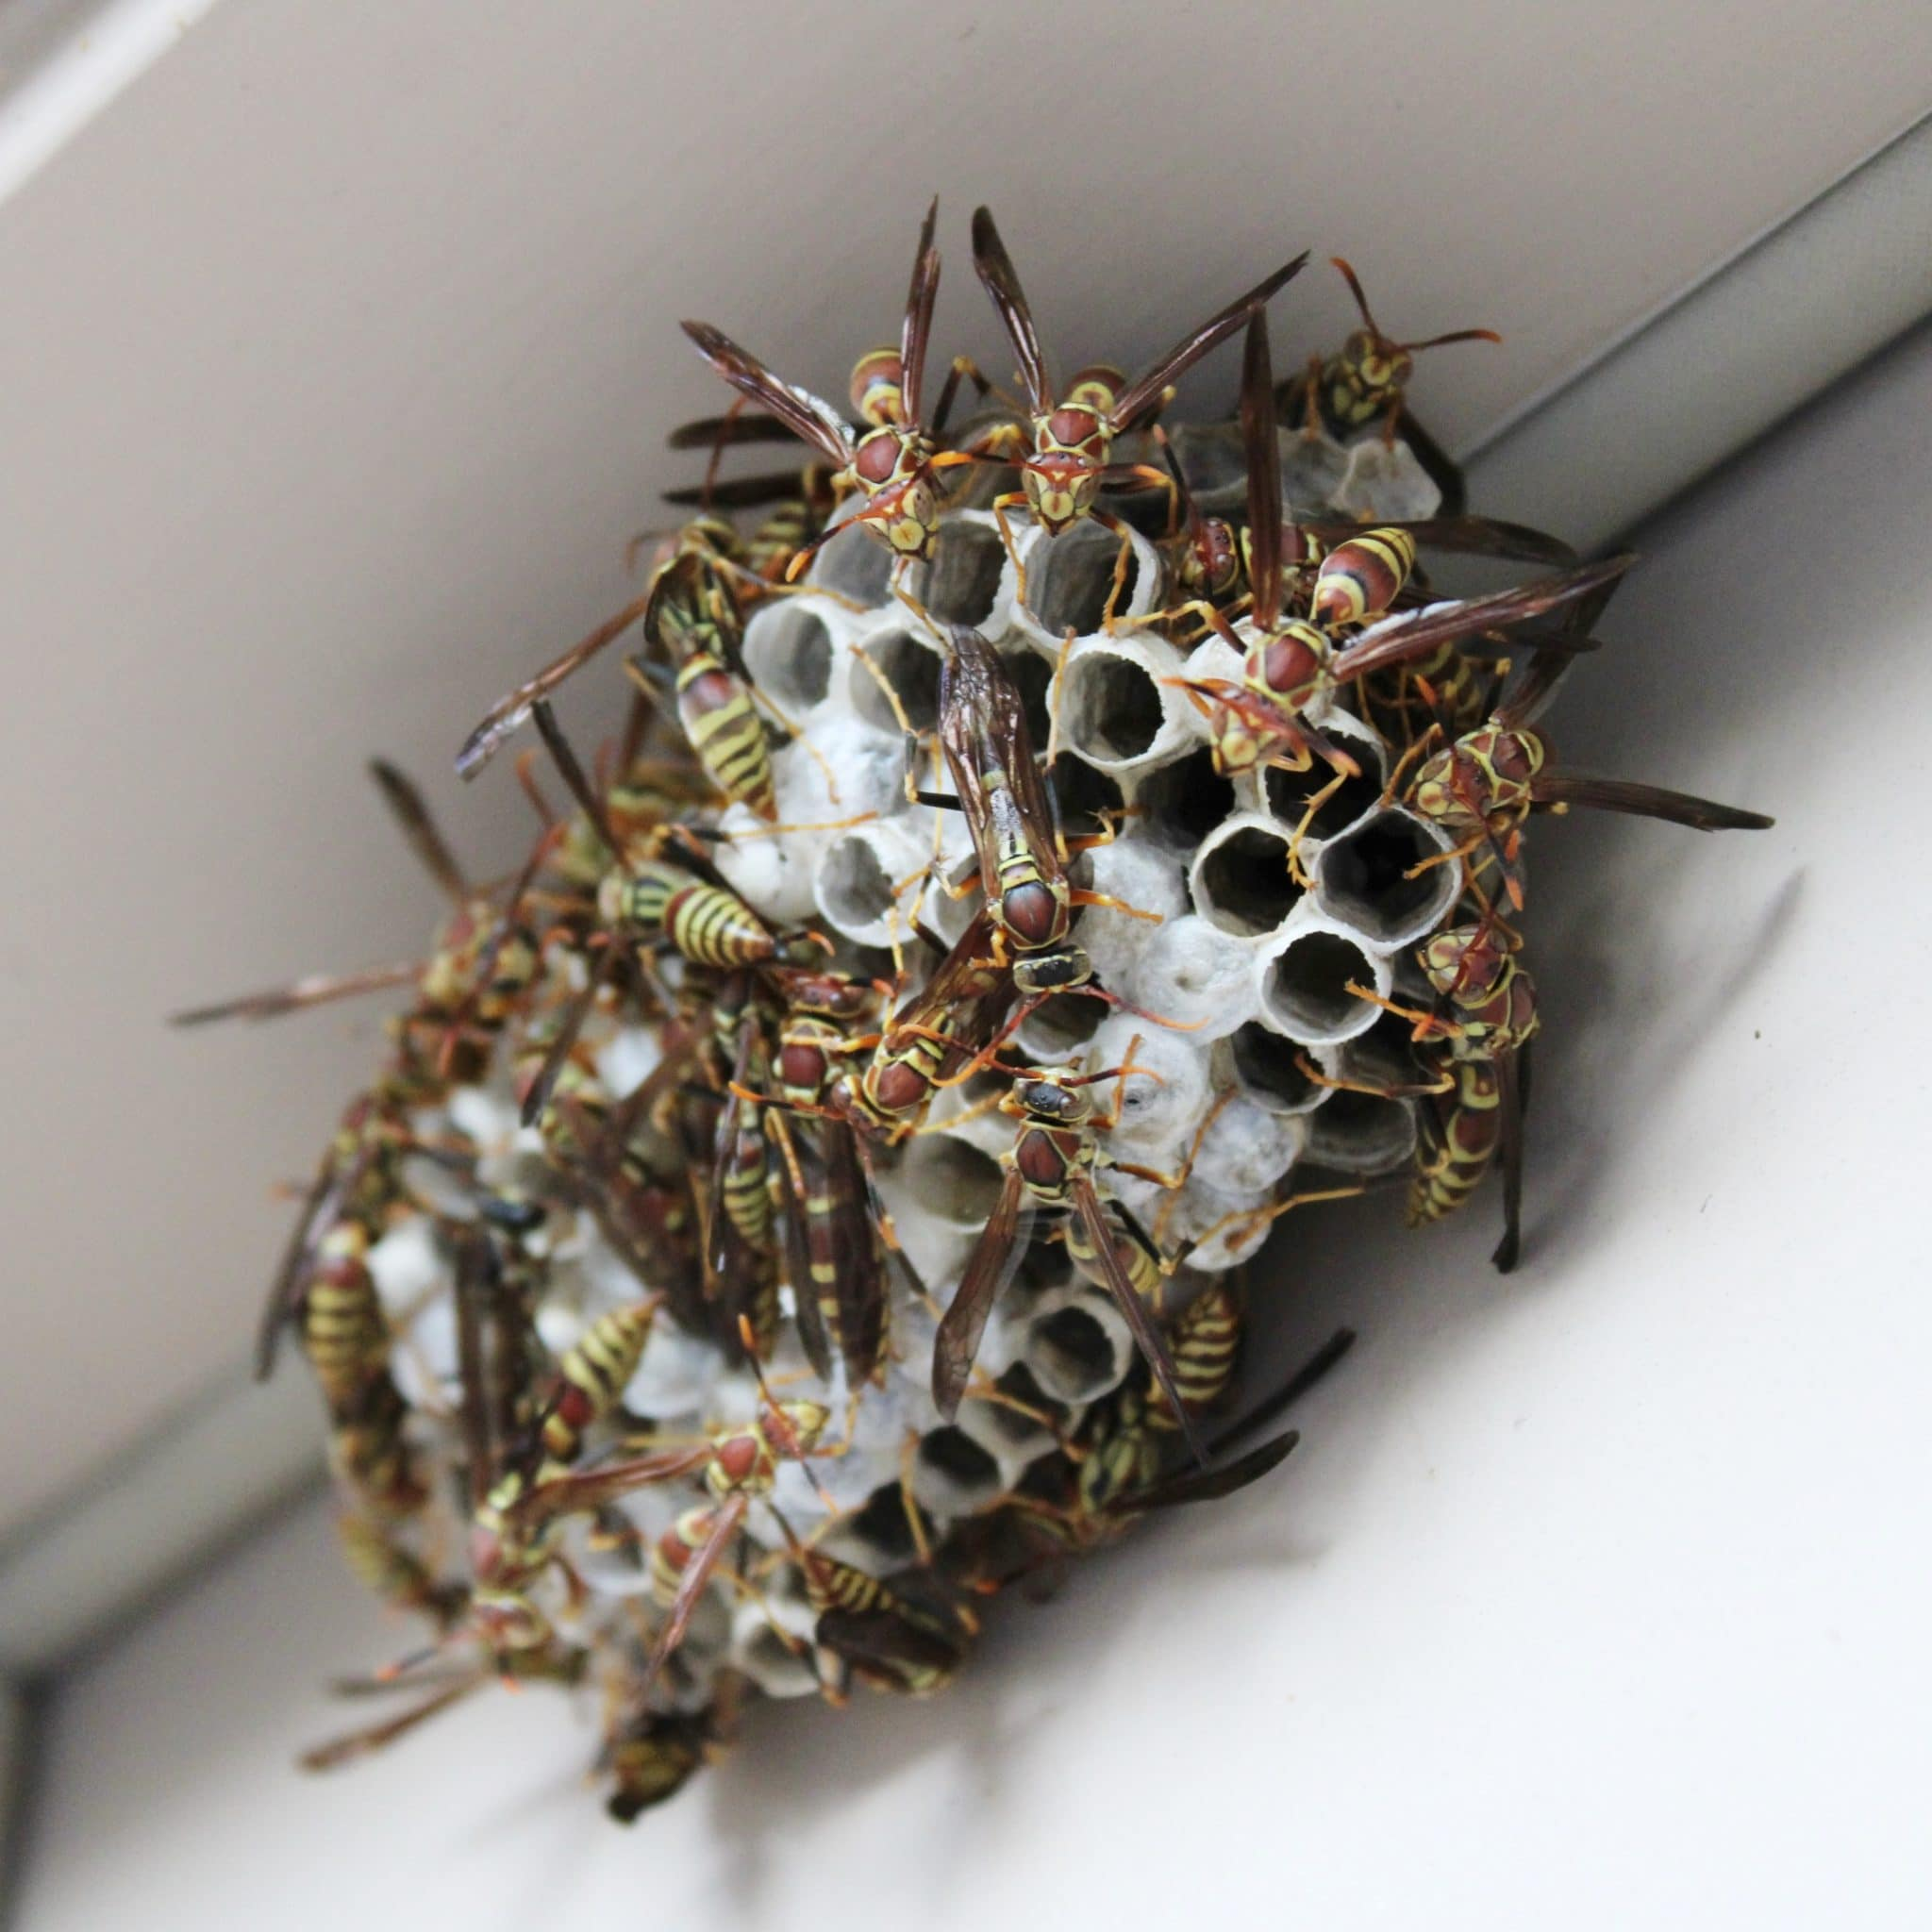 Wasps and bees, like other pests, can pose a risk during crawlspace inspections.